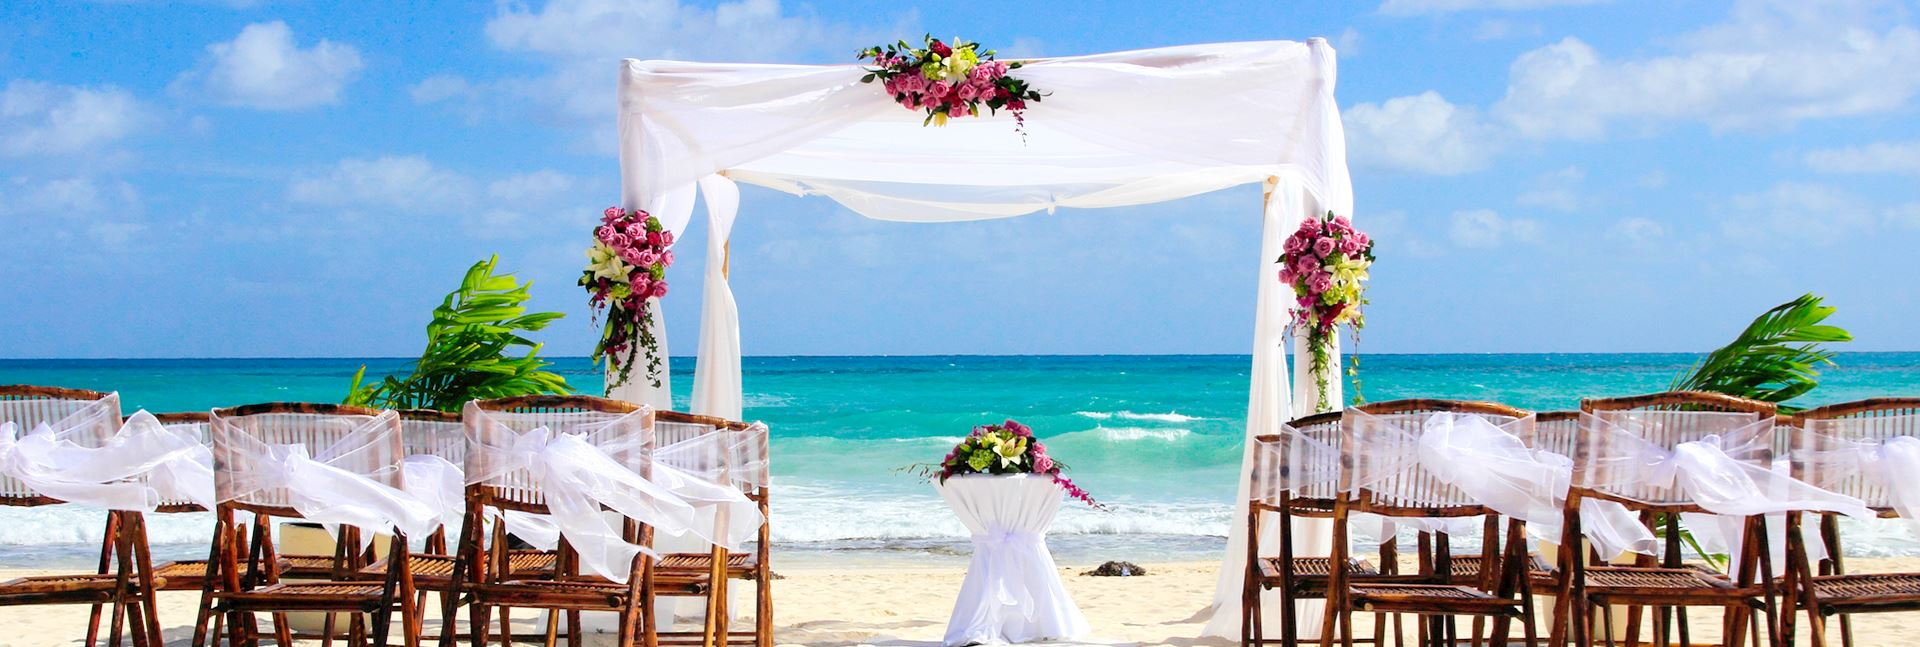 plan your event-at-south-beach-hotel-christ-church-barbados